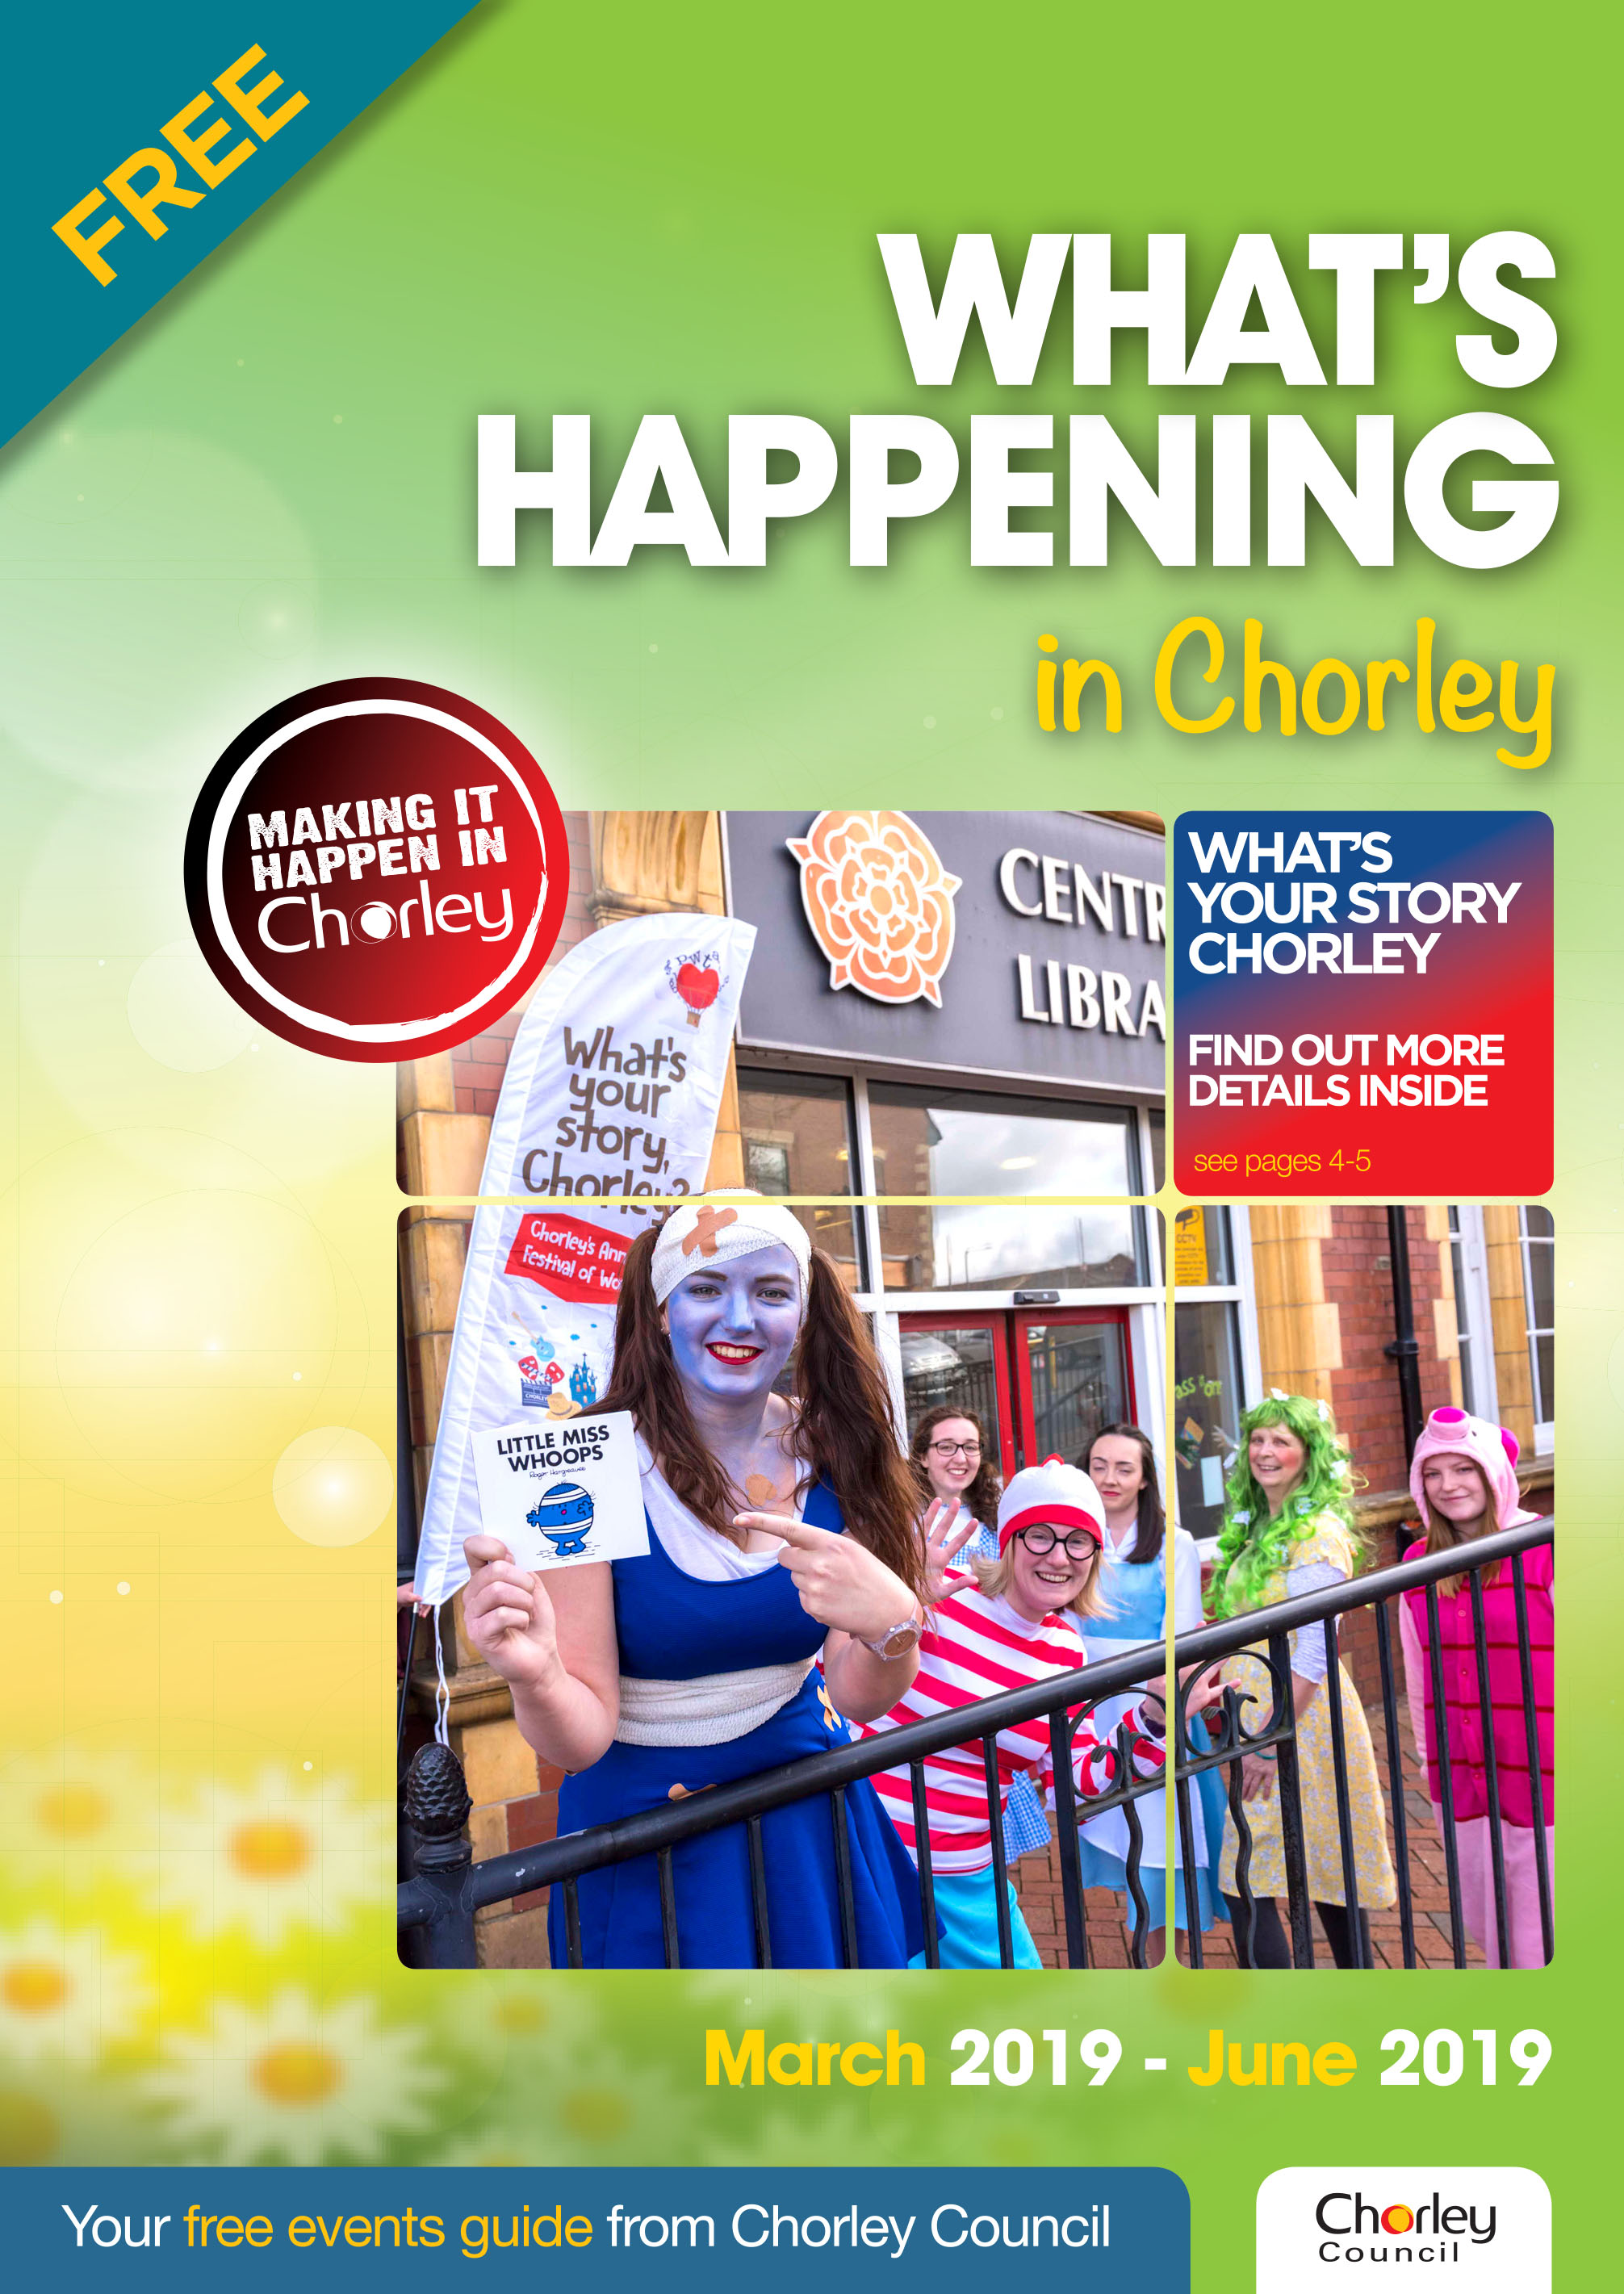 What's happening in Chorley